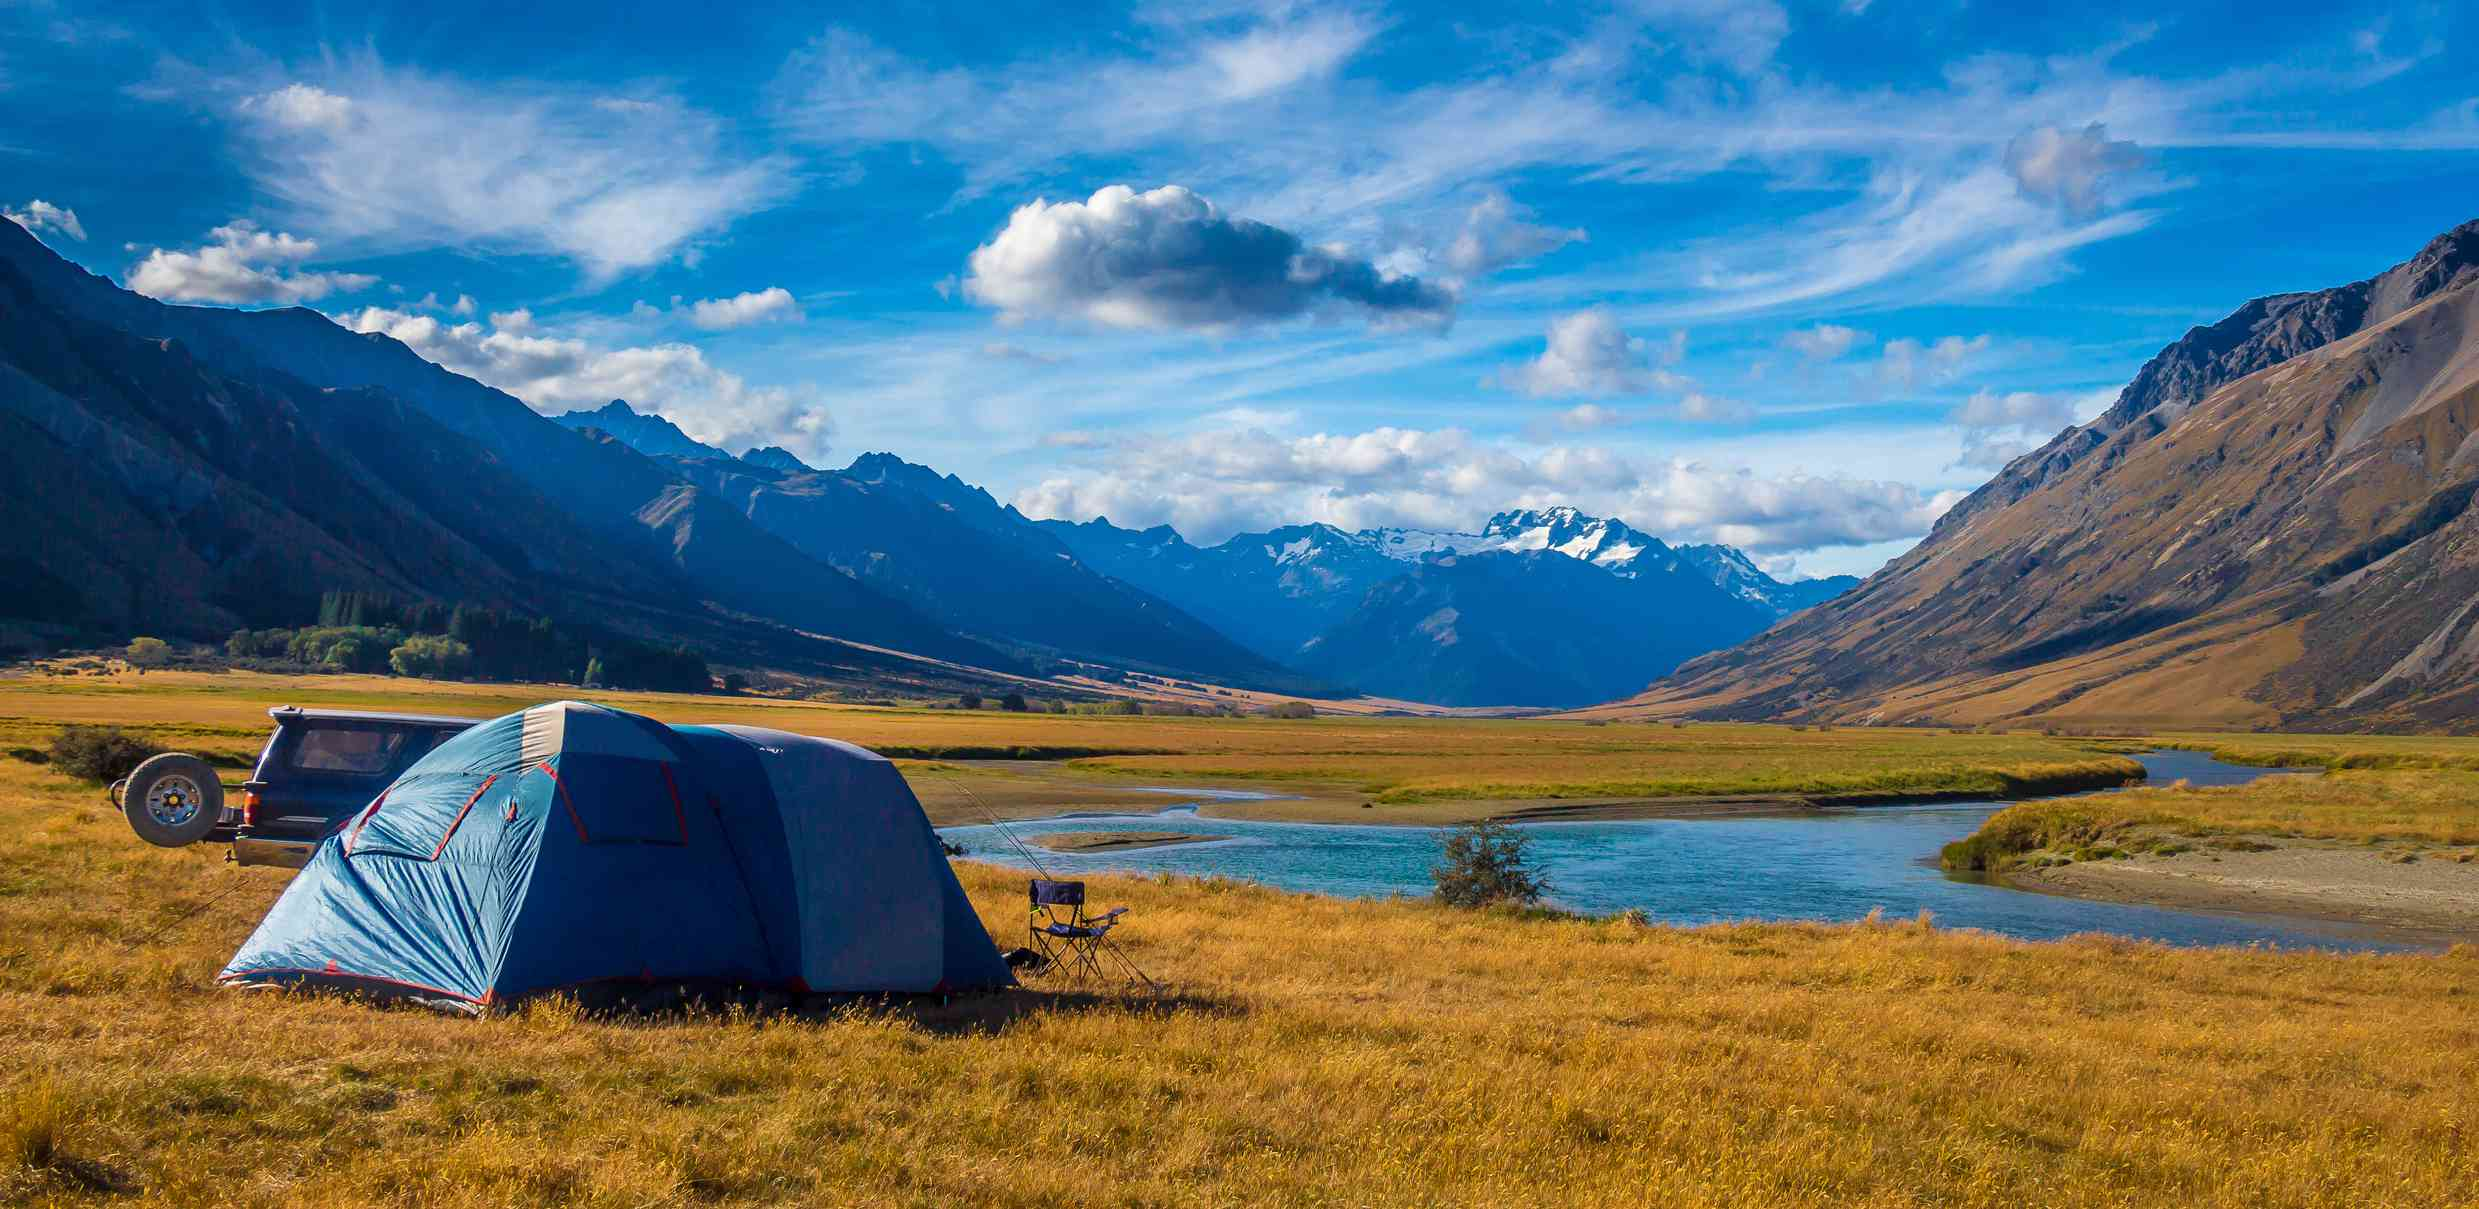 blue tent in golden grassland with river and mountains in background